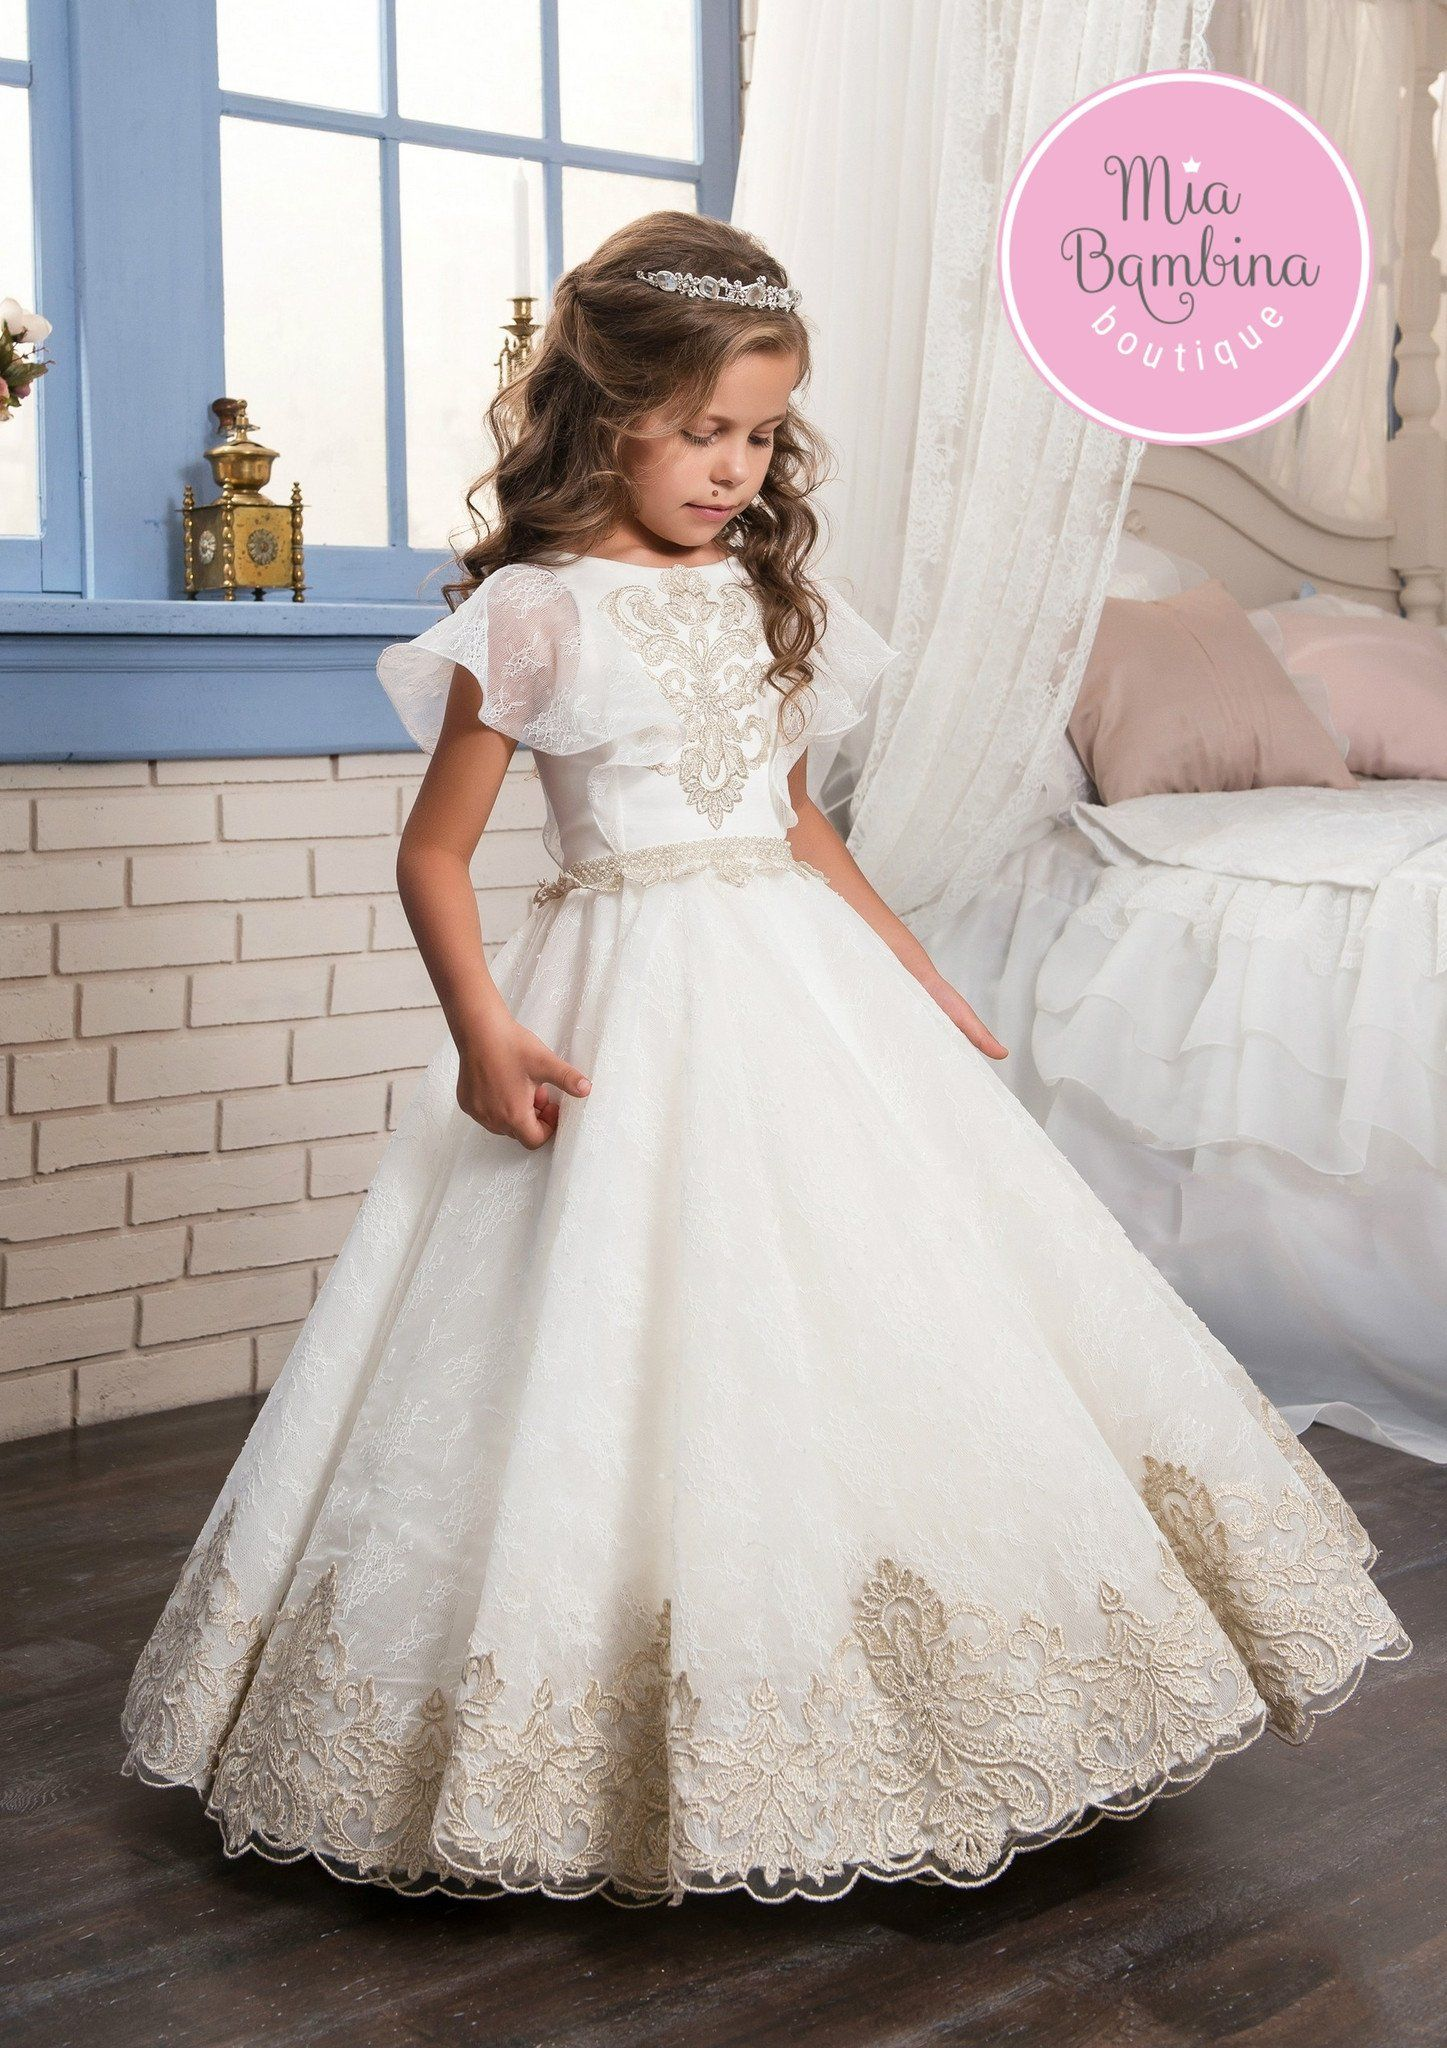 40b77b793bb3 Flower Girl Dresses Chicago Girls Dress for Wedding by MB Boutique ...